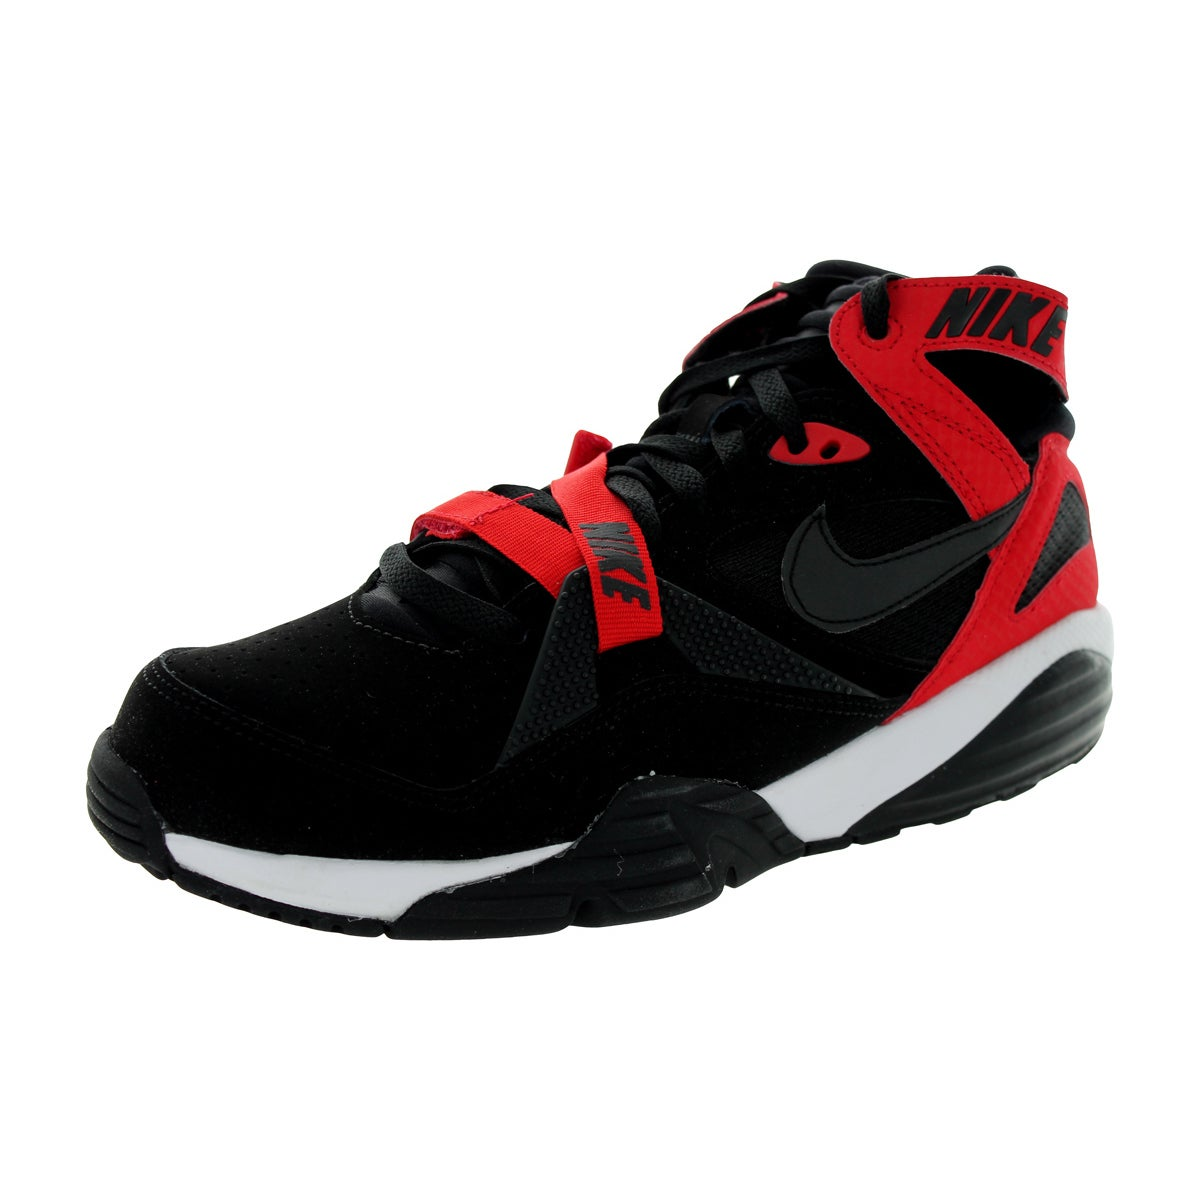 e4965d8f7a1 Shop Nike Men s Air Trainer Max  91 Black Black University Red White  Training Shoe - Free Shipping Today - Overstock.com - 12328925